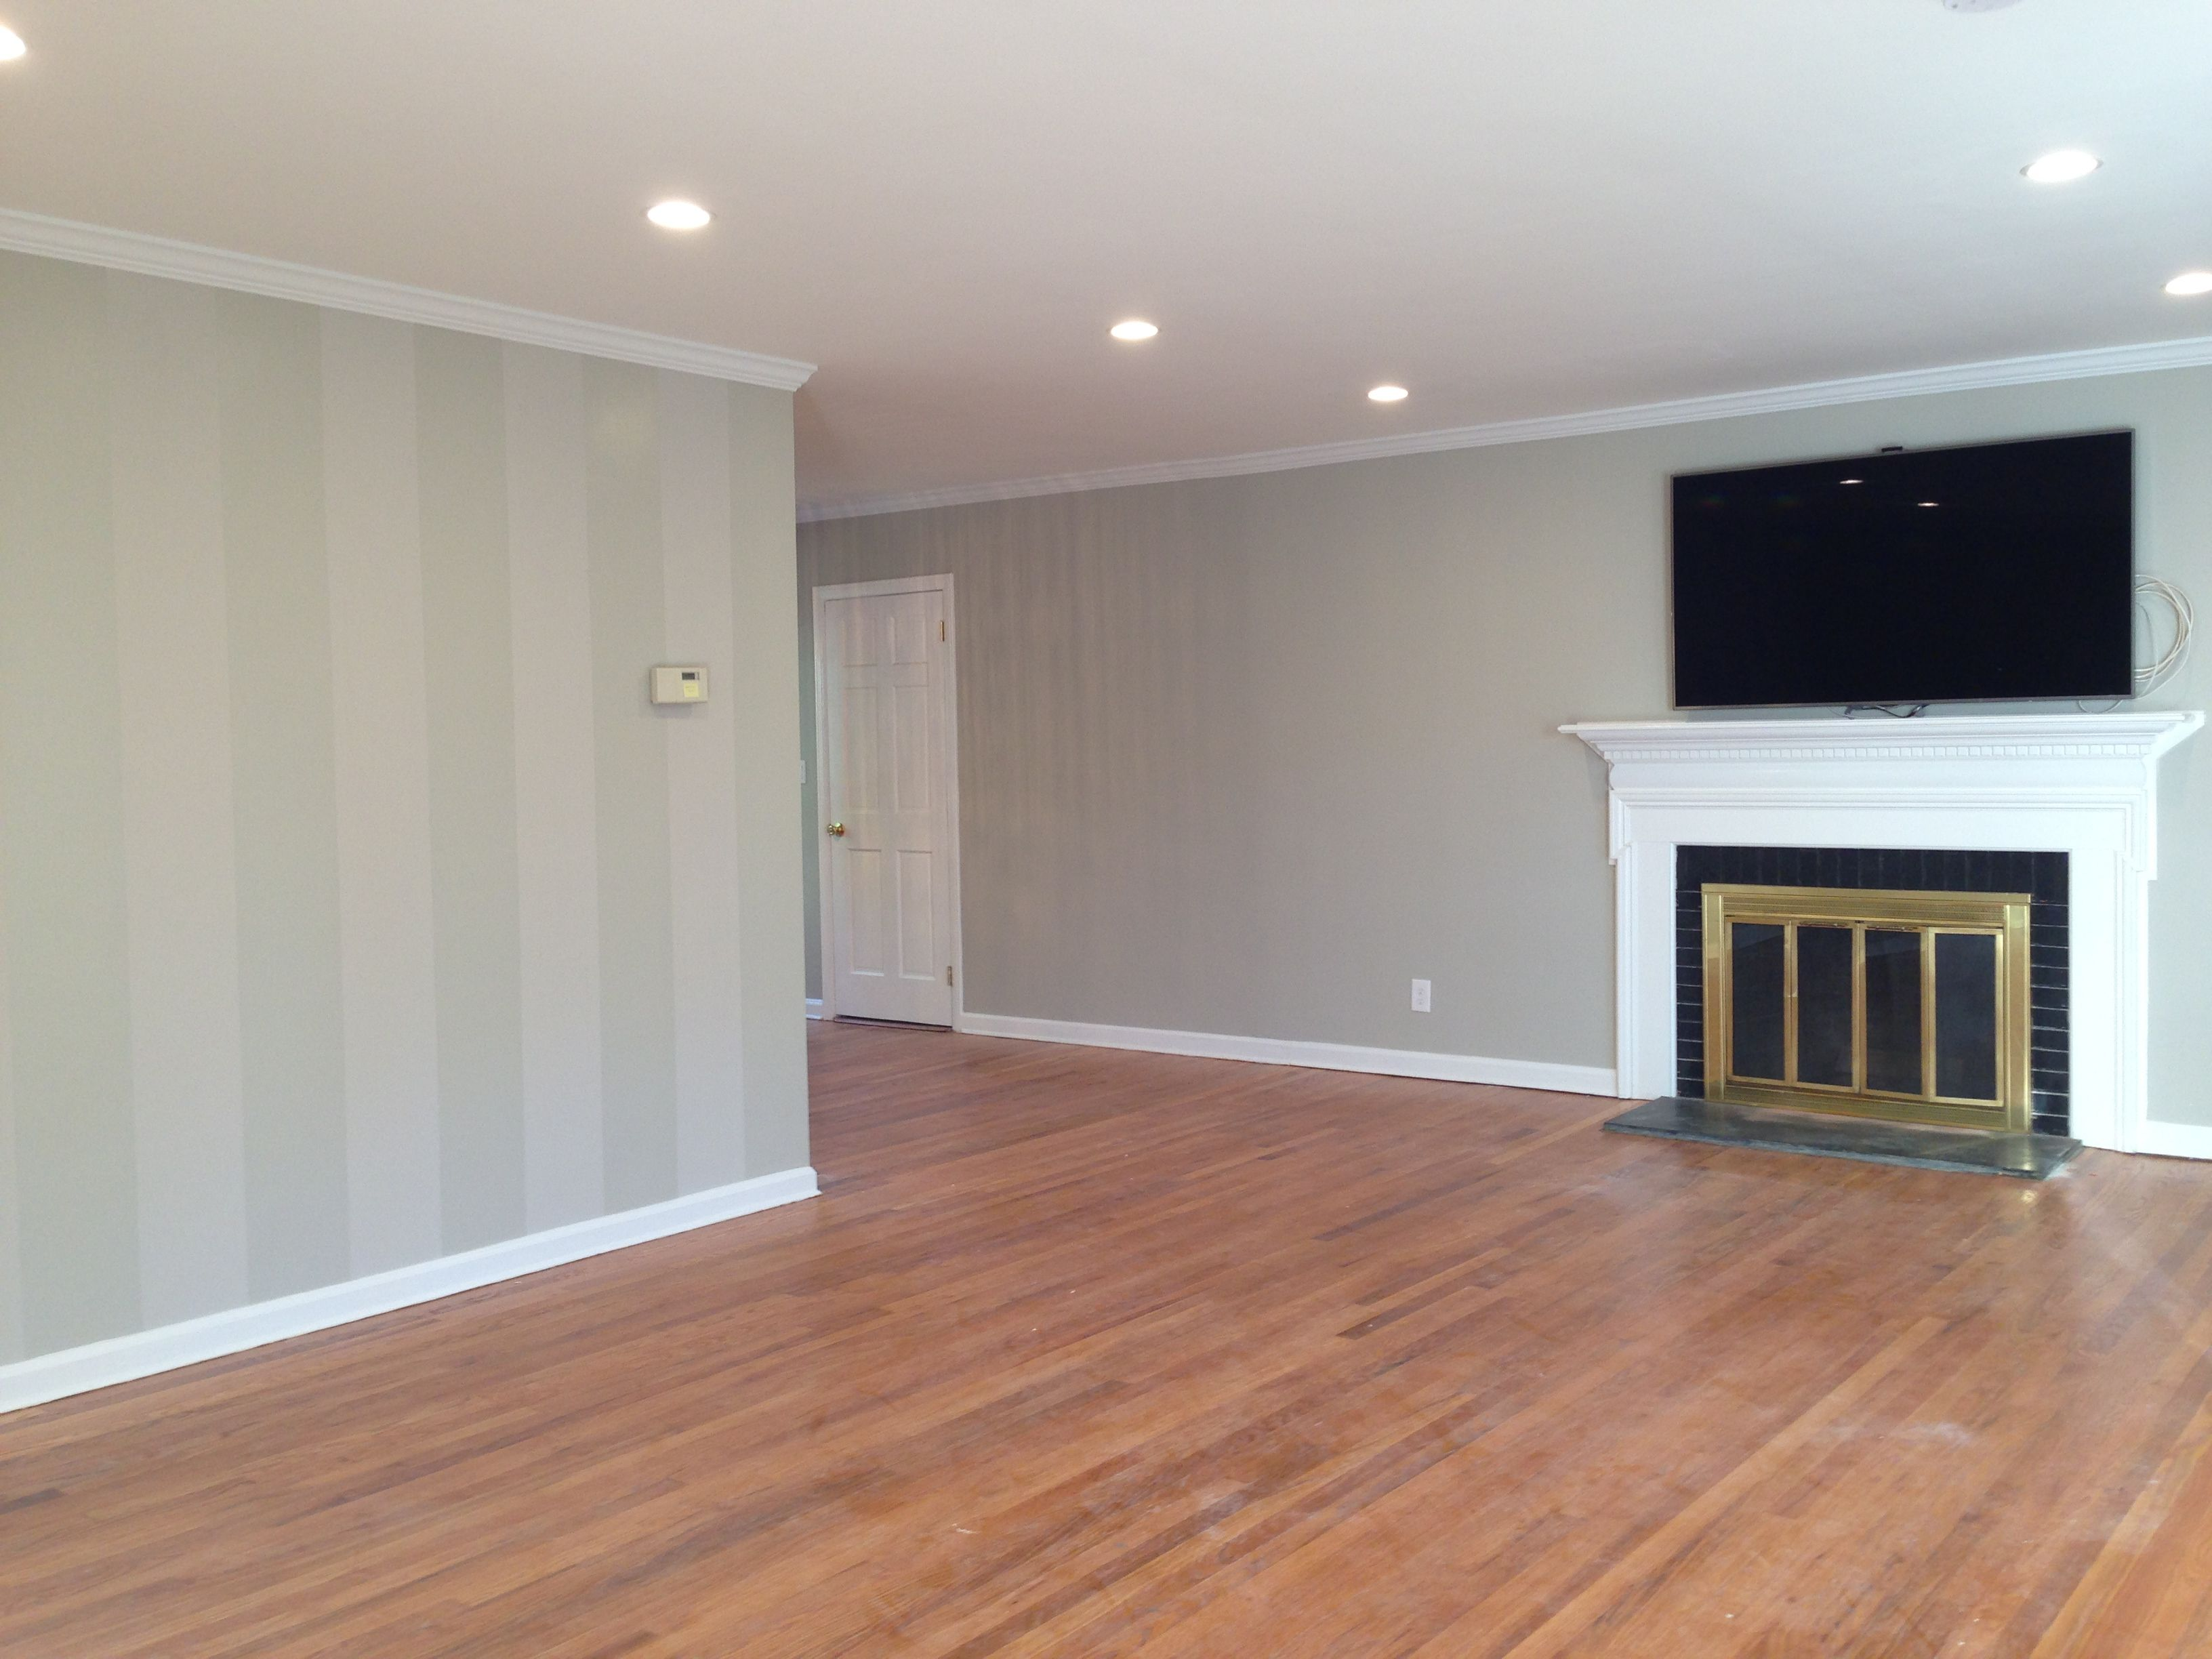 Attractive Casa De Rao   Pic Of Our Living Room Accent Wall! Gloss On Matte Painted  Stripes In BM Seattle Mist Semi Gloss And Rodeo Matte. BM Seattle Mist  Matte On The ...